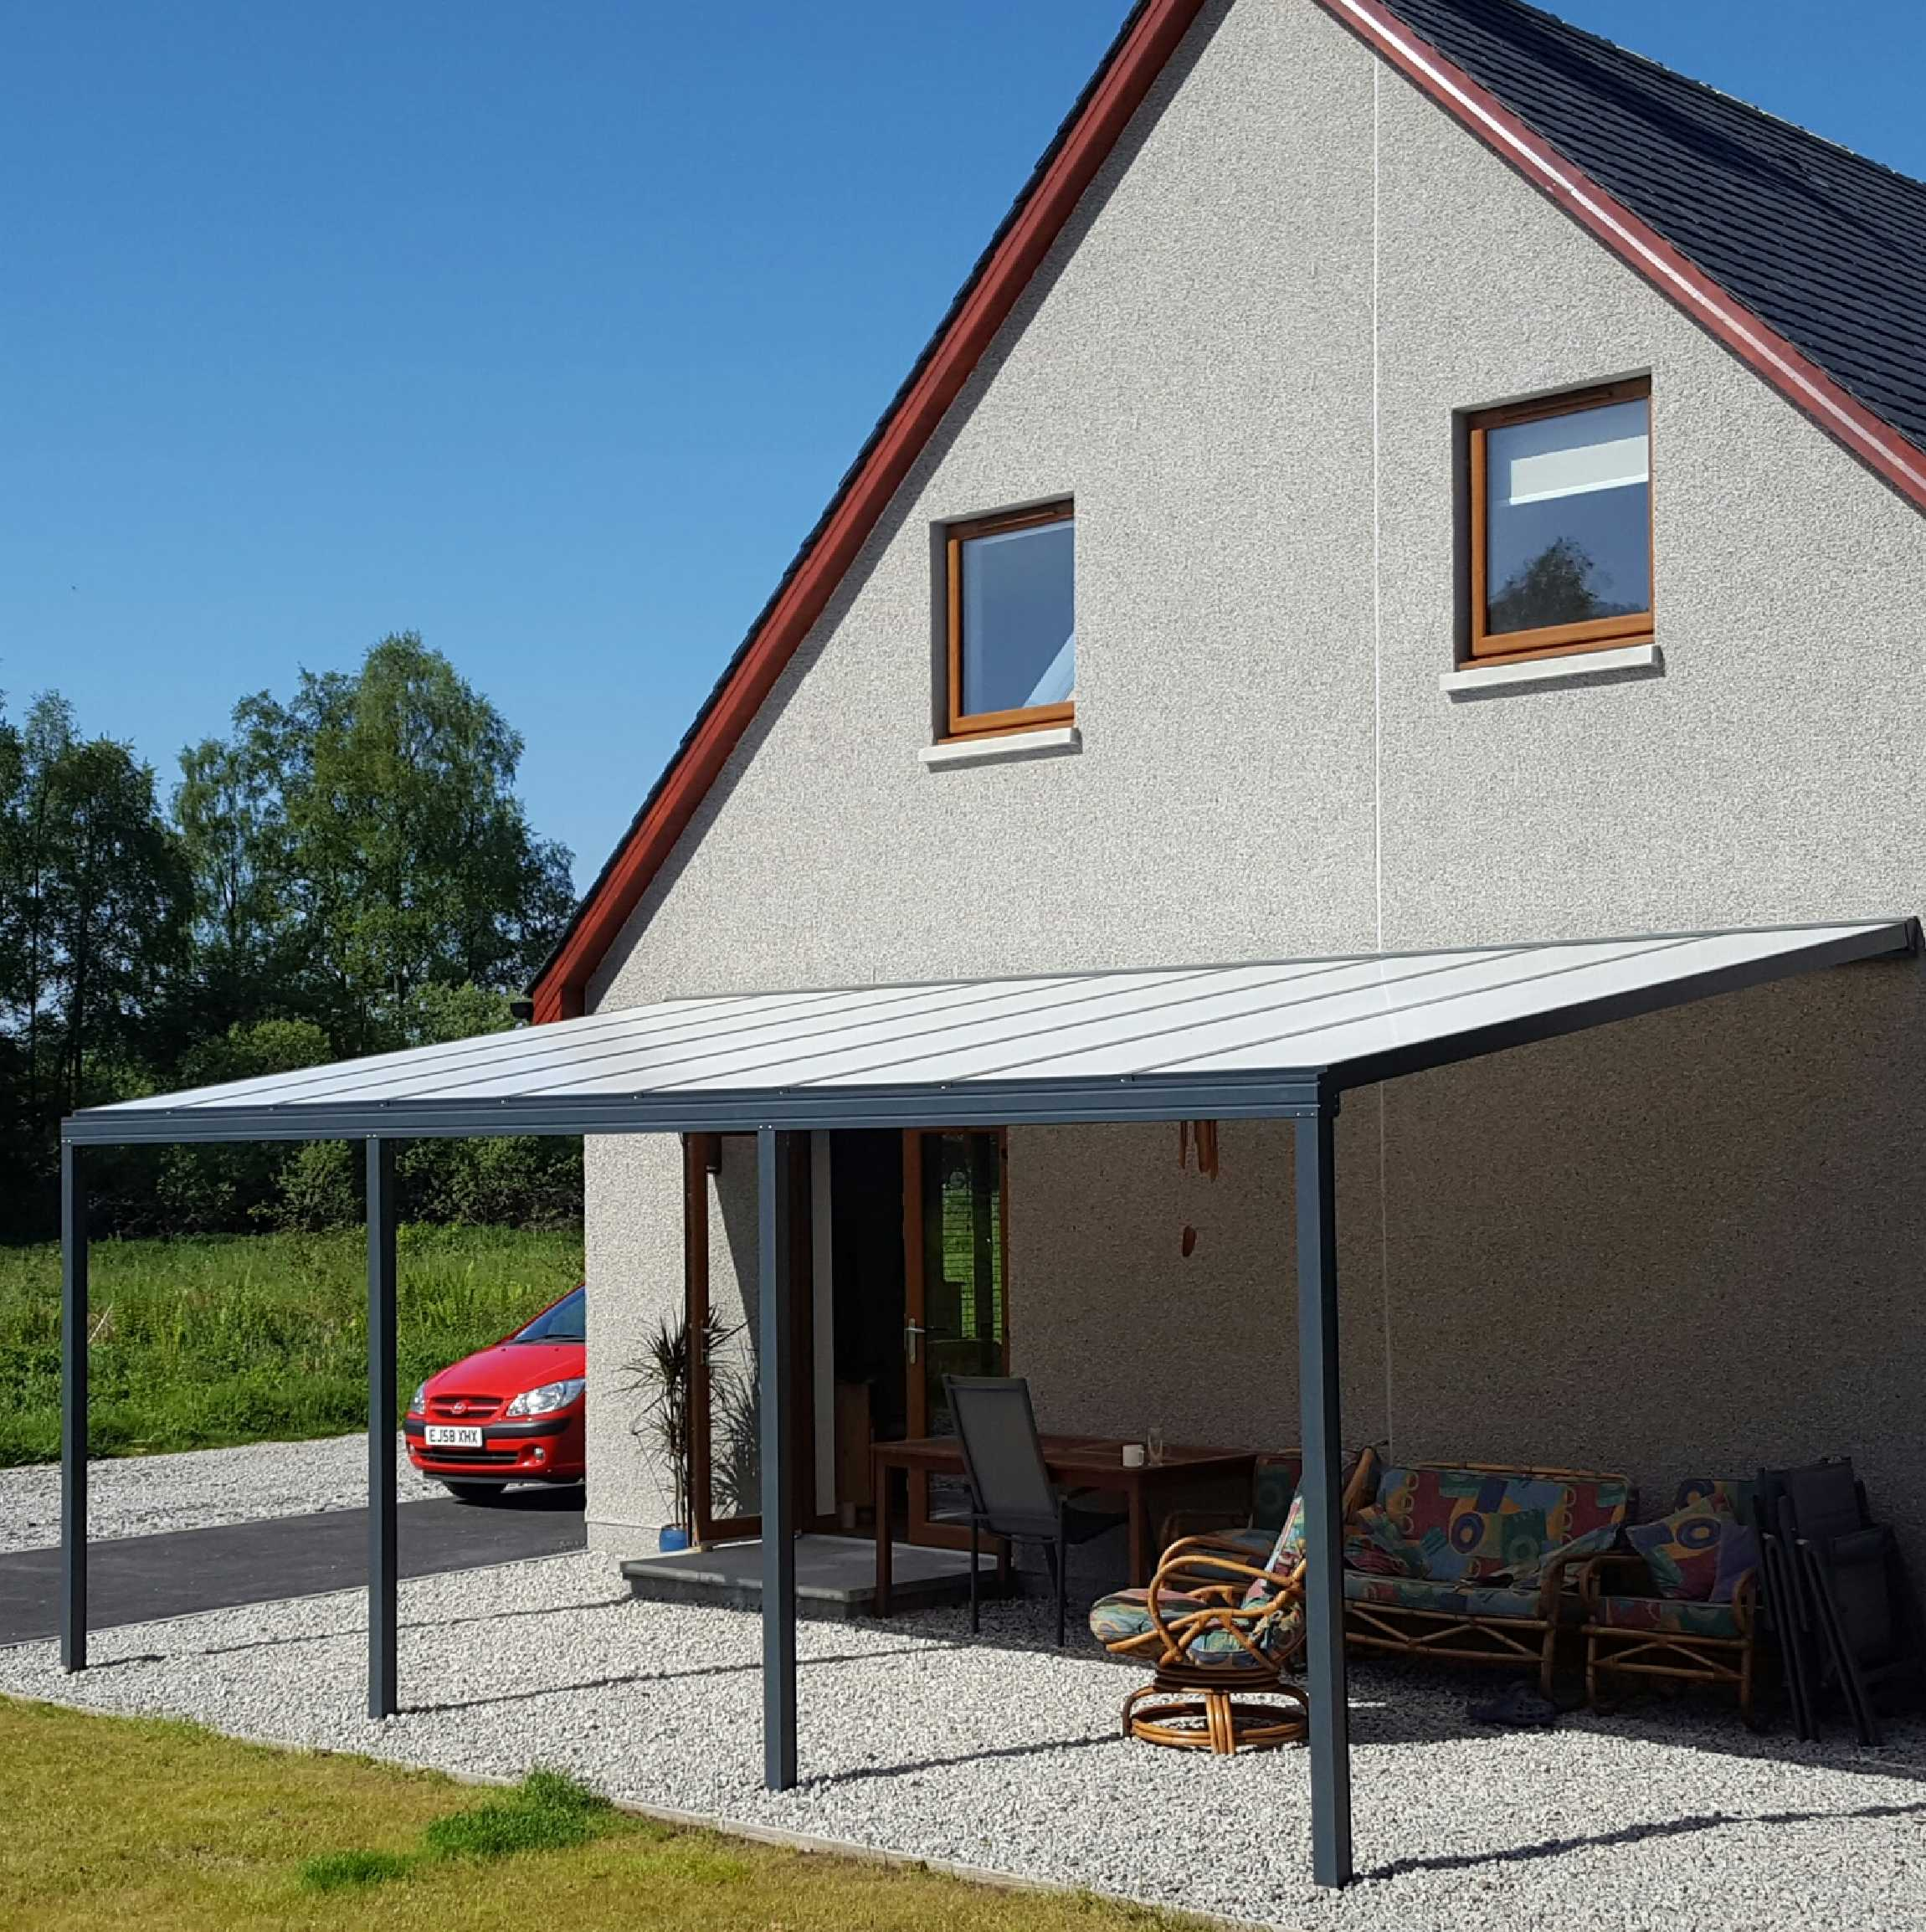 Great selection of Omega Smart Lean-To Canopy, Anthracite Grey, 16mm Polycarbonate Glazing - 2.1m (W) x 1.5m (P), (2) Supporting Posts